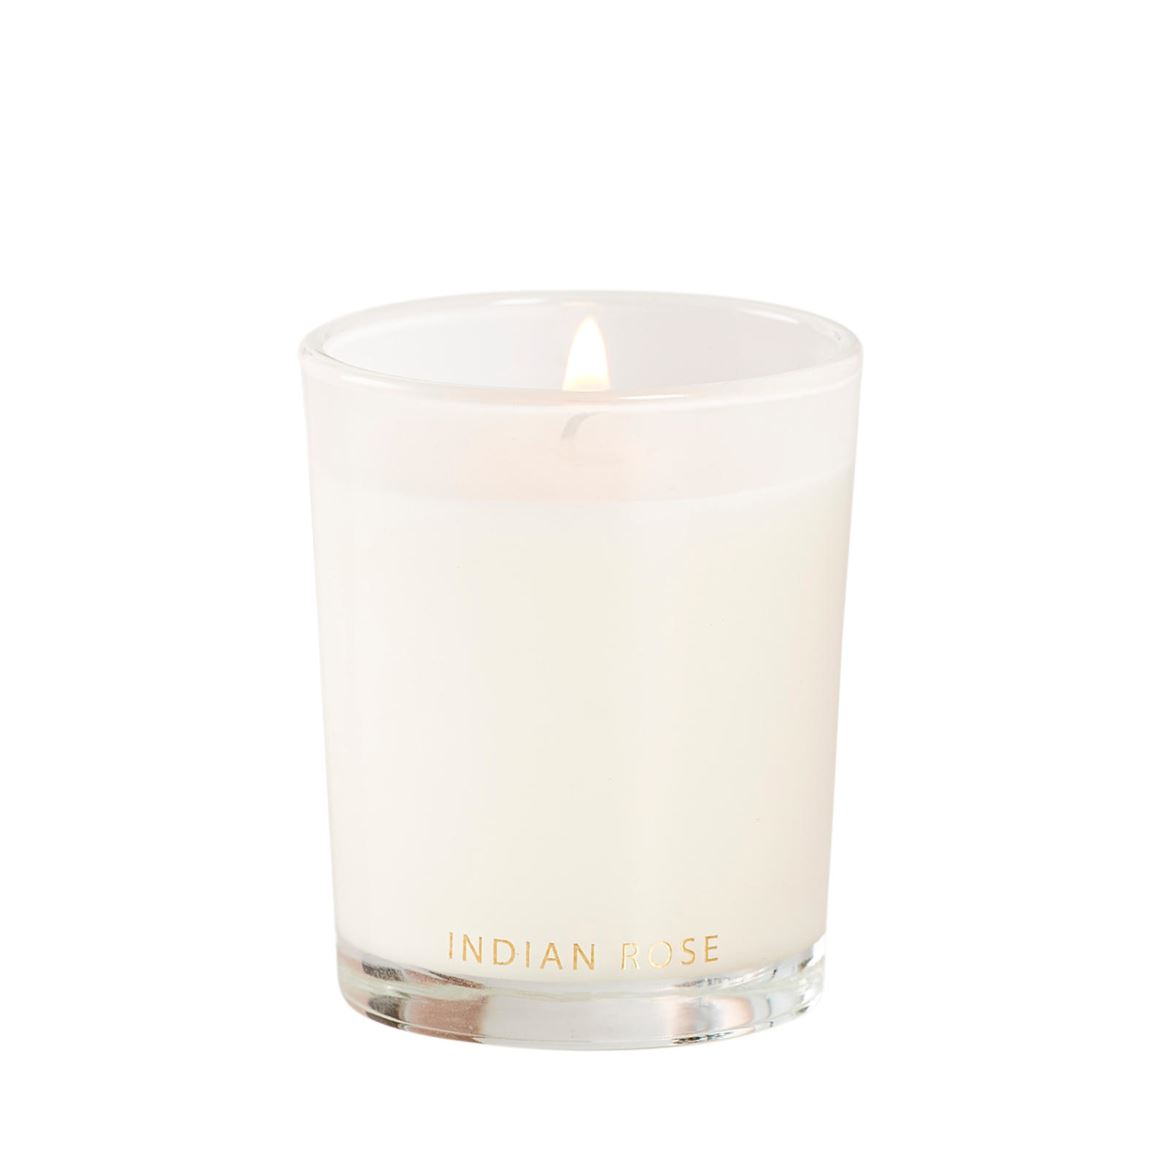 INDIAN ROSE Vela perfumada en vaso blanco A 6.5 cm; Ø 5.5 cm_indian-rose-vela-perfumada-en-vaso-blanco-a-6-5-cm;-ø-5-5-cm